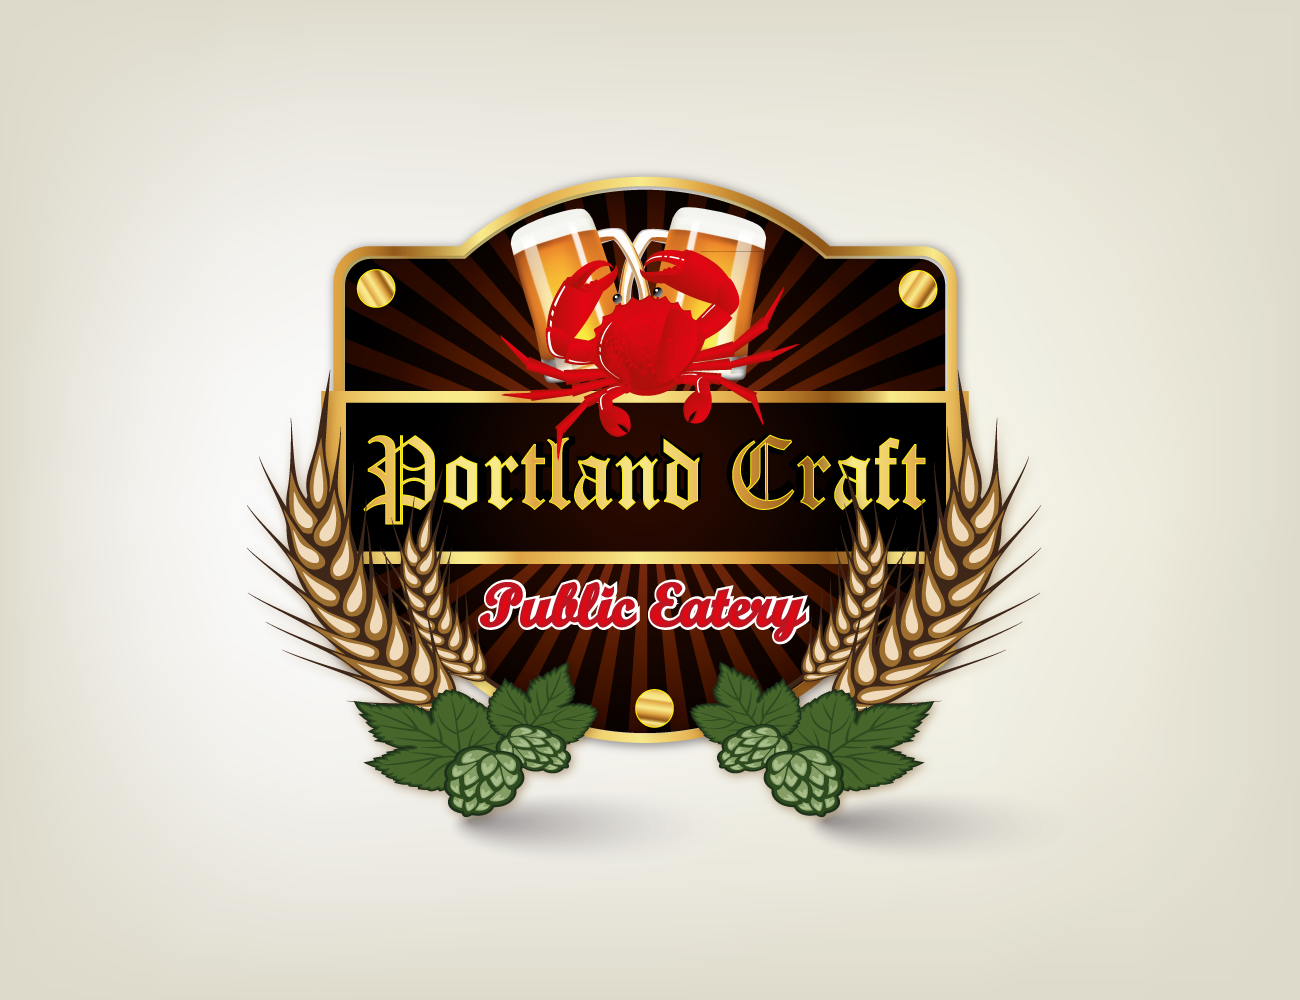 Logo Design by luwabu - Entry No. 12 in the Logo Design Contest New Logo Design for Portland Craft Public Eatery.